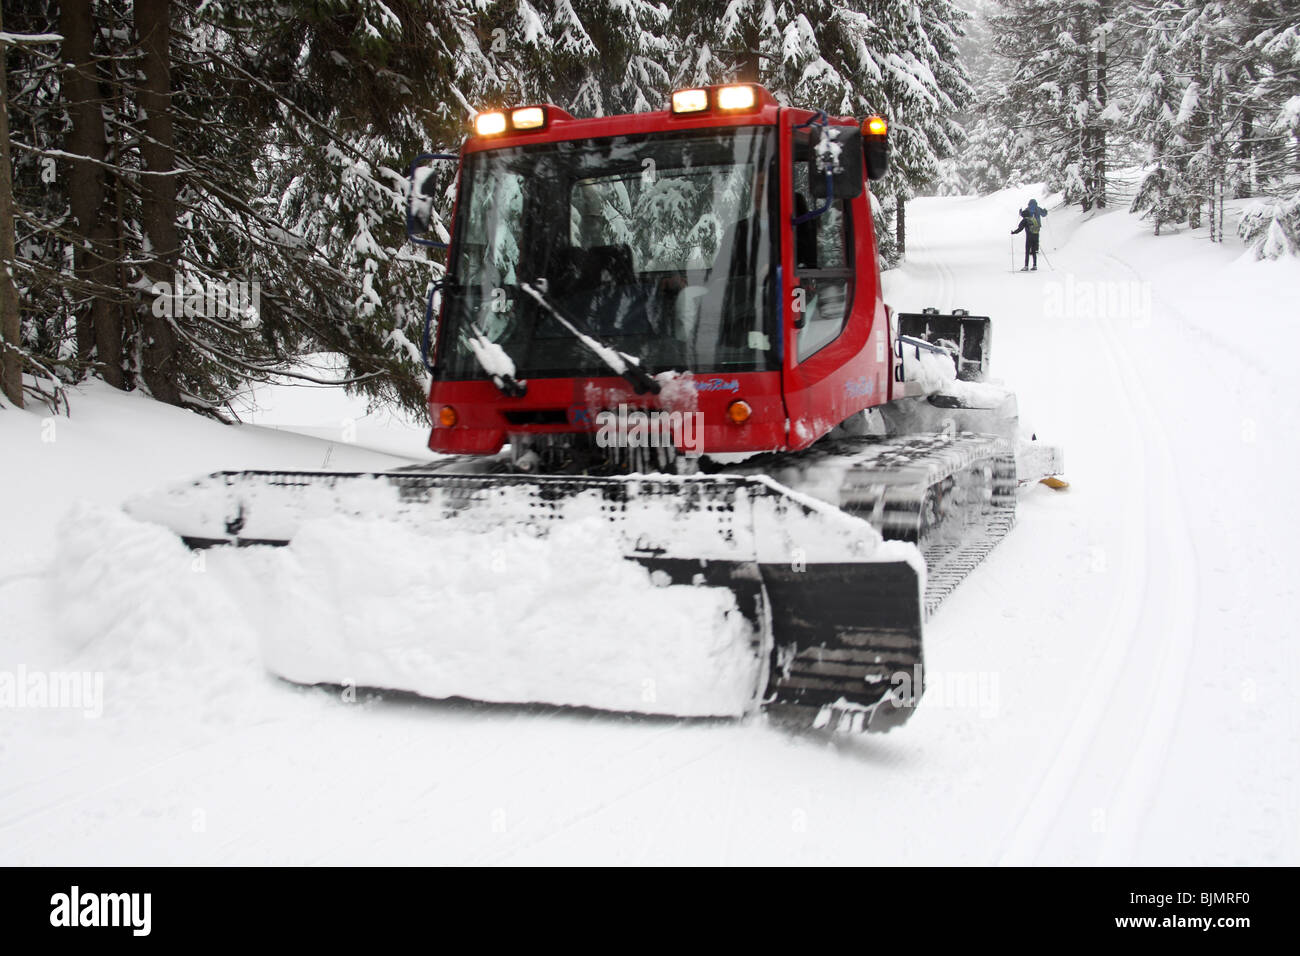 Preparing cross country ski track in Jakuszyce, Sudety Mountains, Poland. - Stock Image